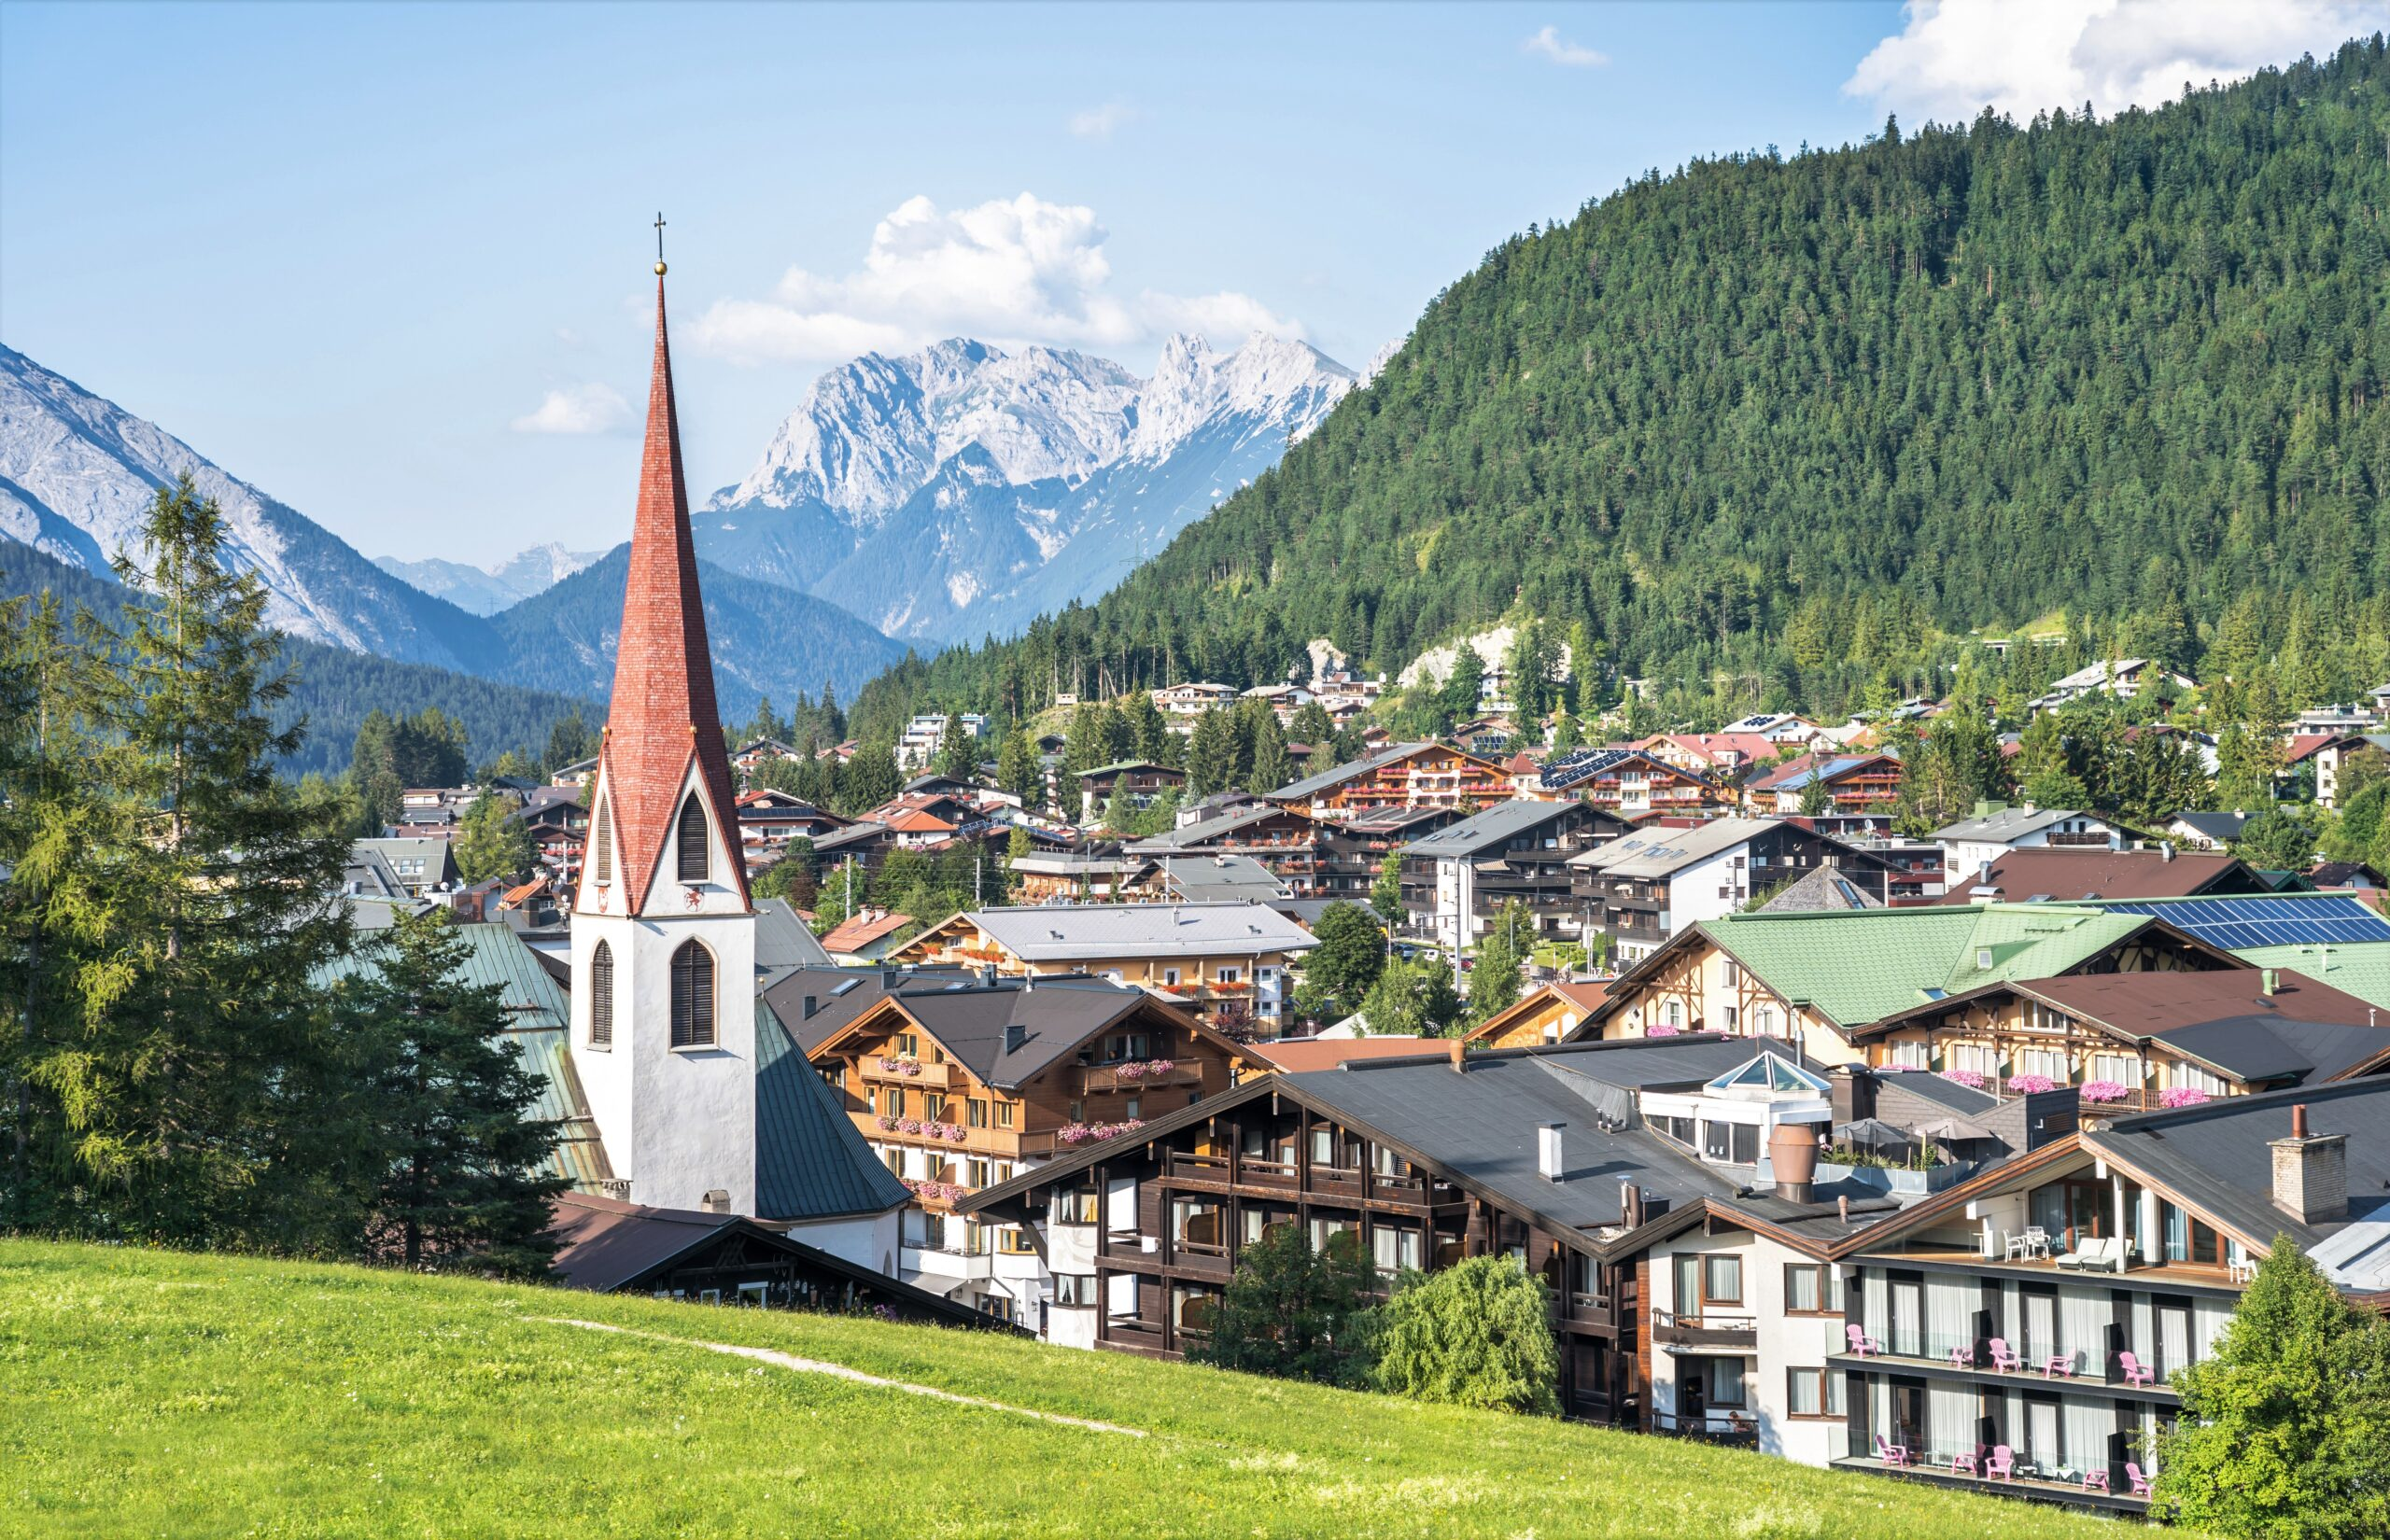 Photo featuring the Alpine landscape of Seefeld in Tyrol. Several small ski lodges are seen at the base of a green mountain. A church with a brick steeple is on the left side. Snow capped mountains are far in the background of this small town in Austria.